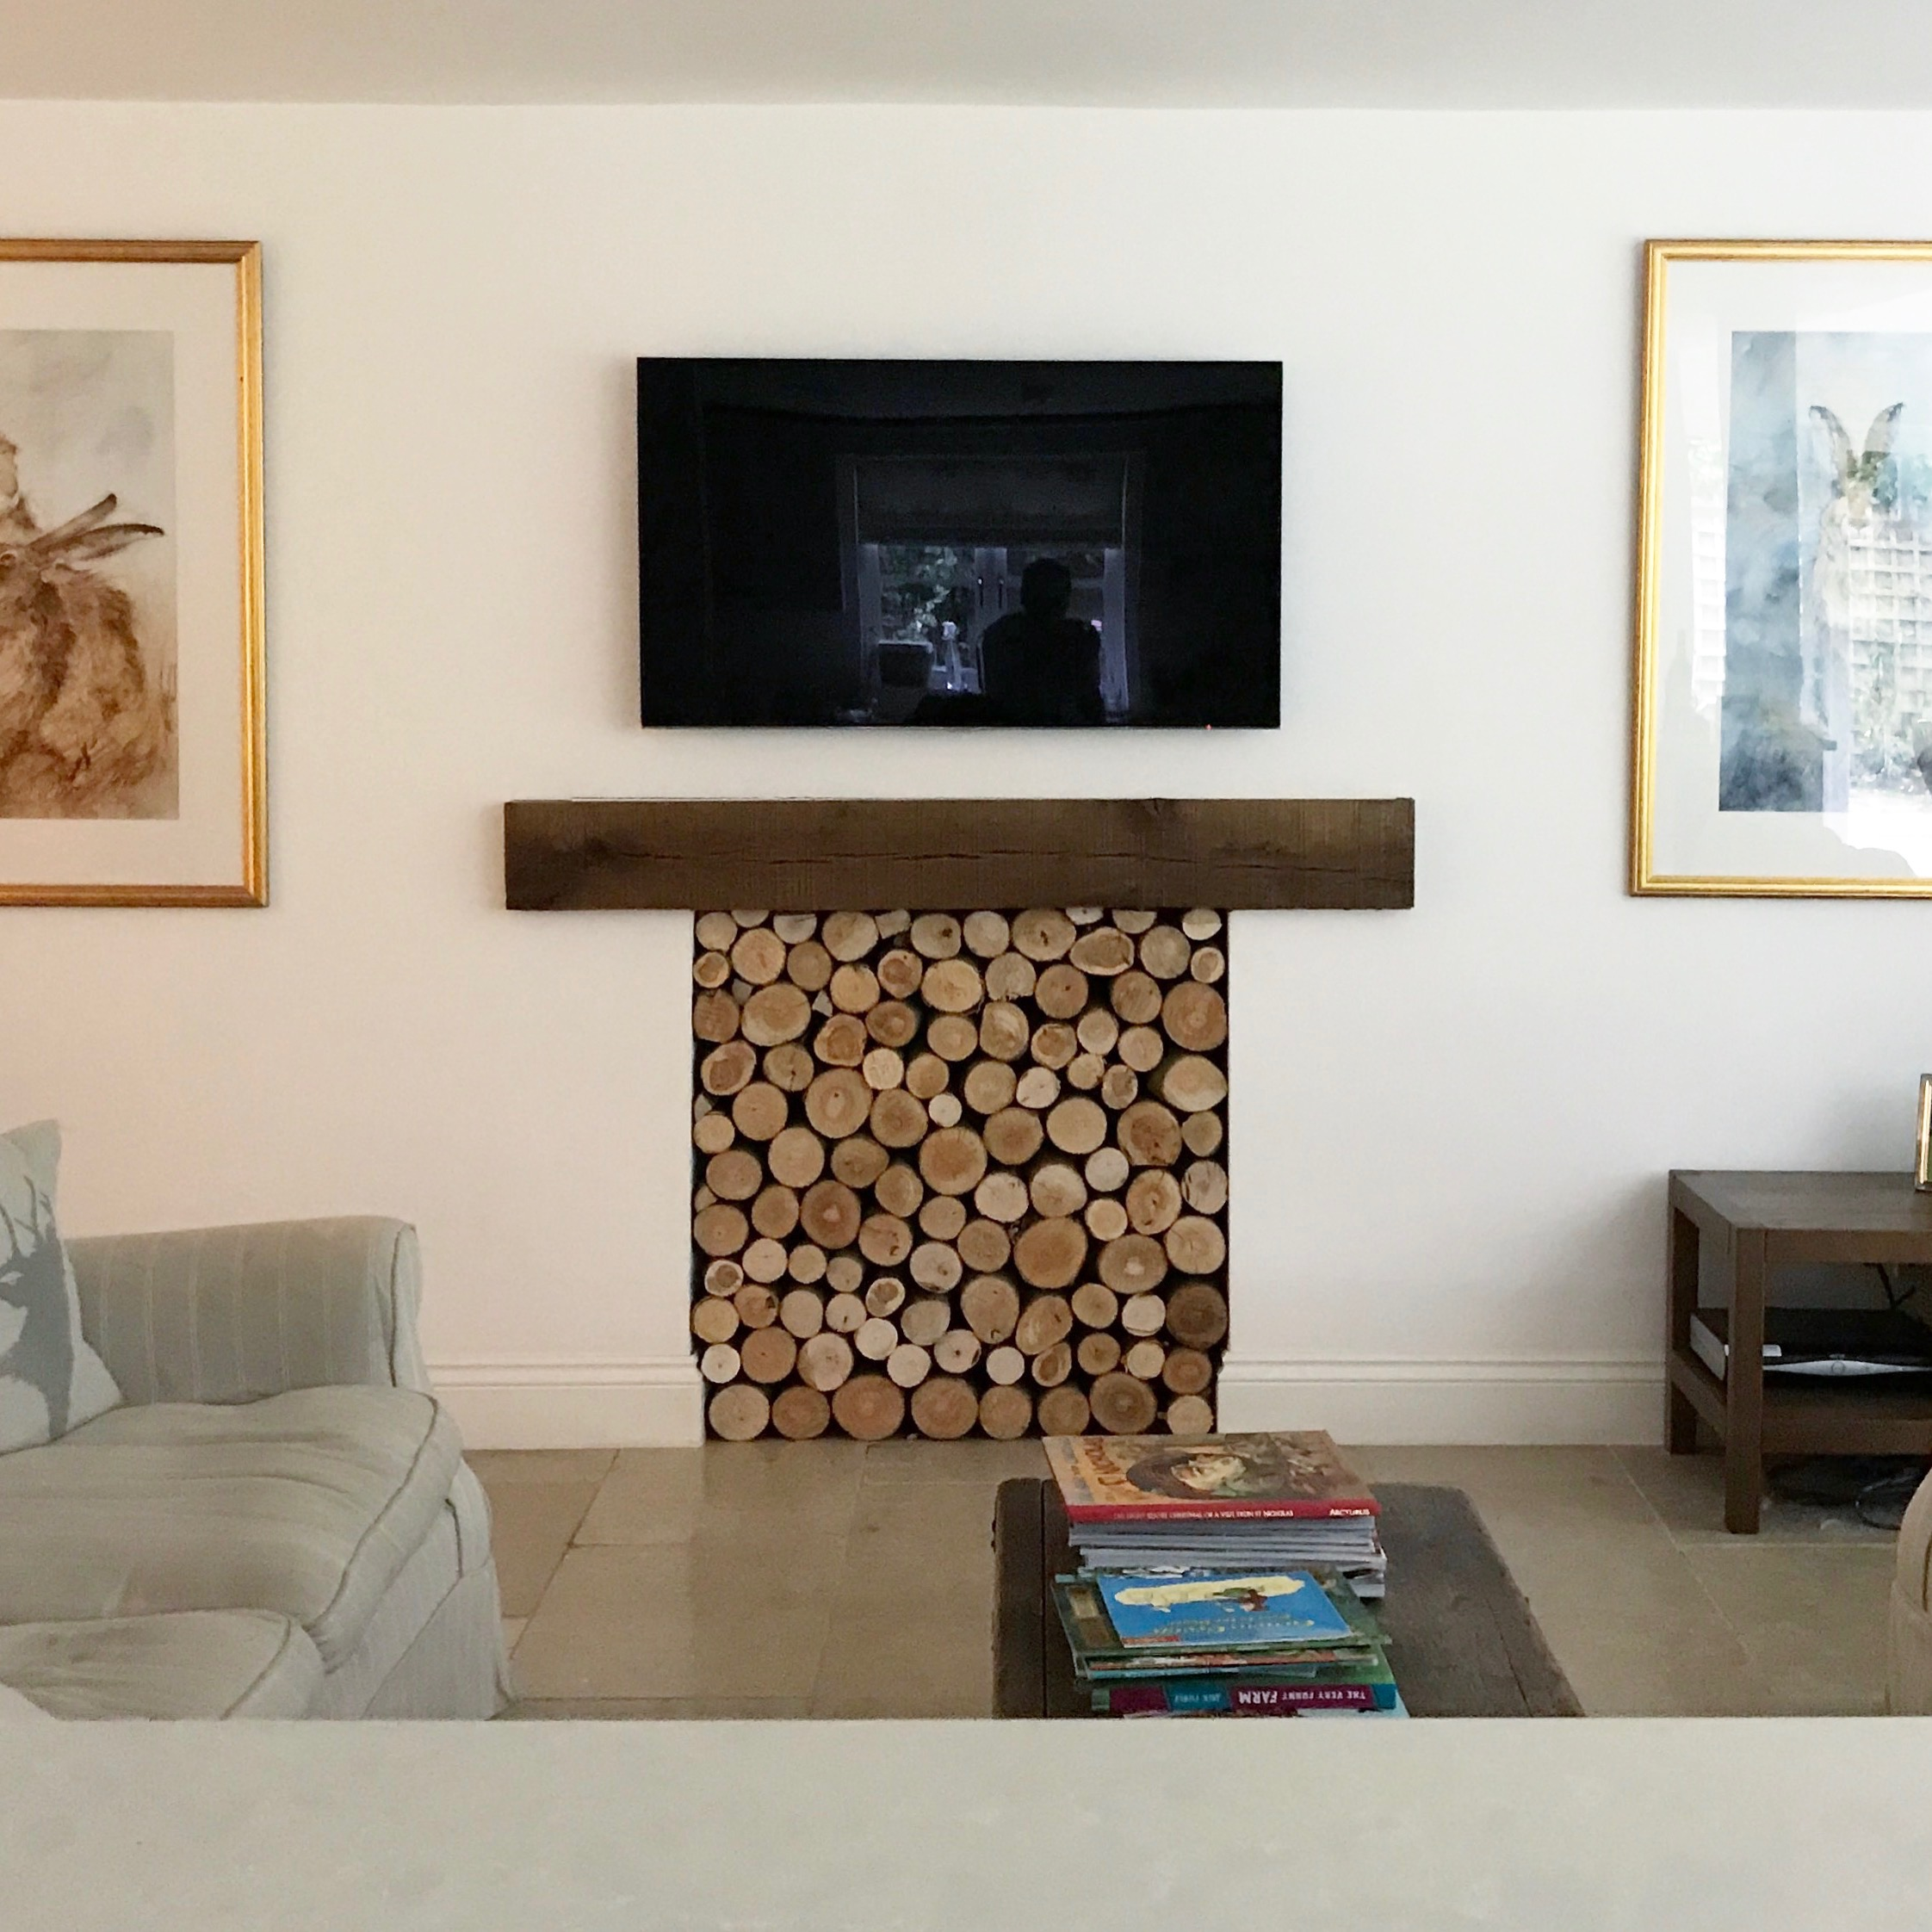 Residential - child friendly natural log feature to replace old fireplace.